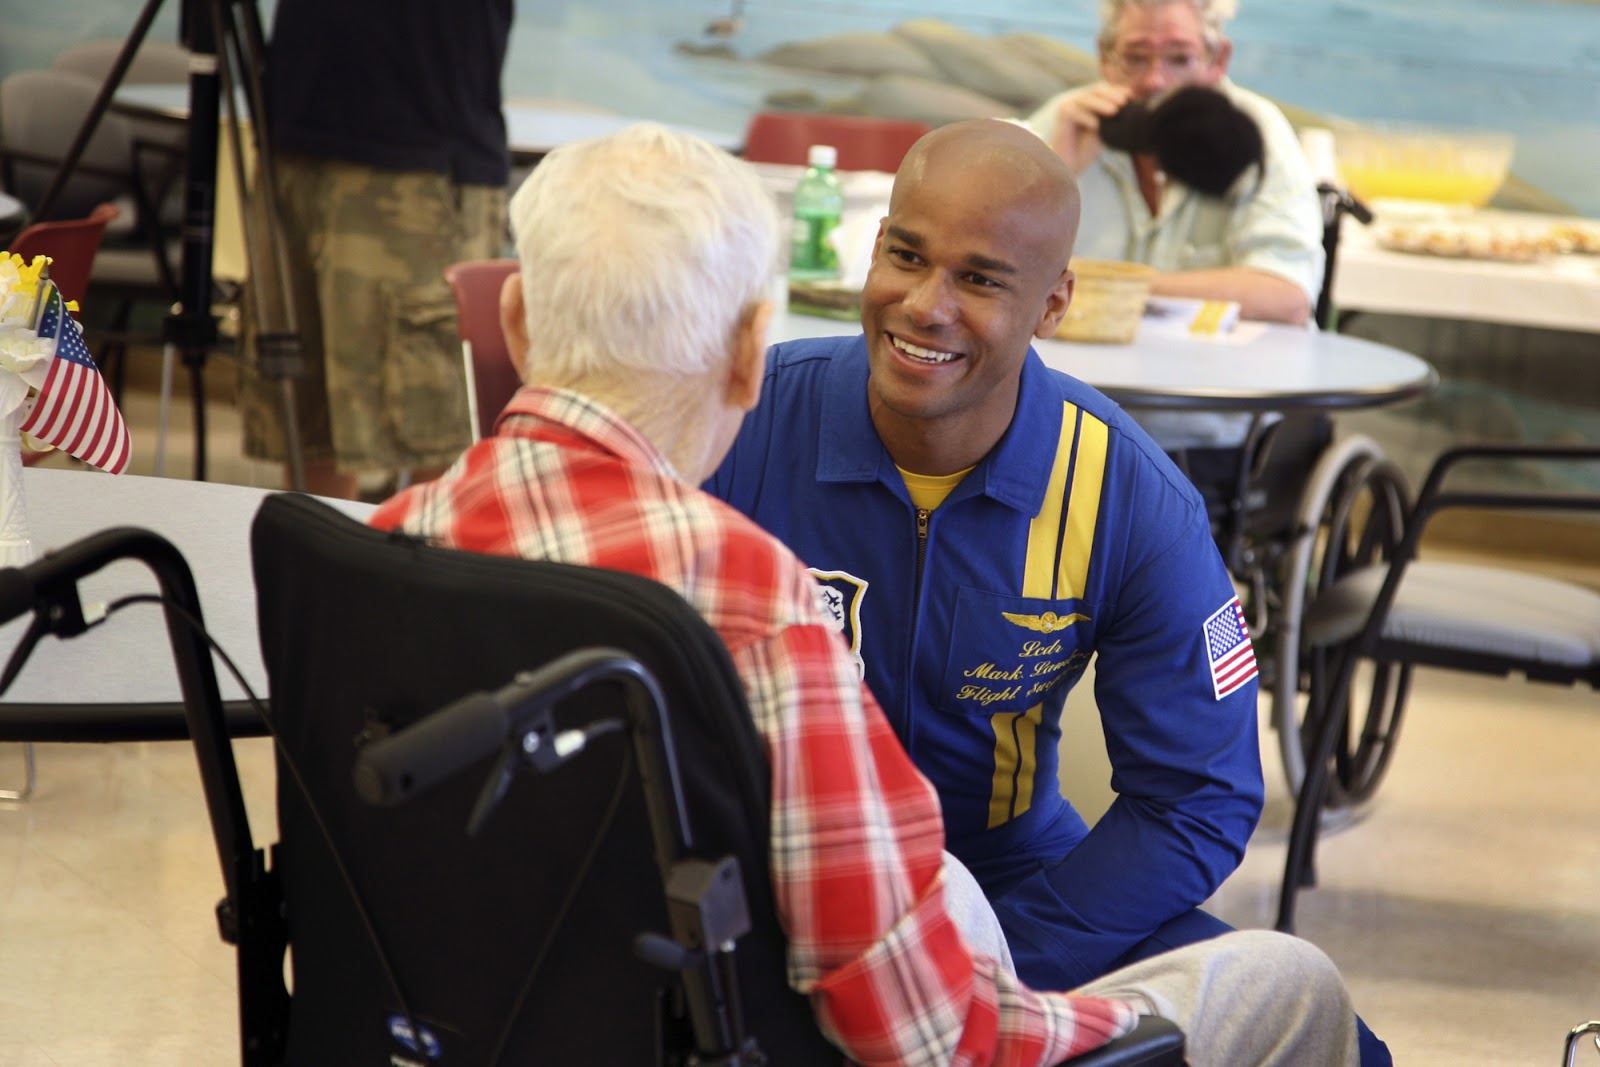 US_Navy_080808-N-3271W-037_Lt._Cmdr._Mark_Lambert,_flight_surgeon_for_the_Navy_flight_demonstration_squadron_Blue_Angels,_visits_with_a_resident_of_the_nursing_home_care_center_at_Spokane_Veterans_Administration_Hospital.jpg